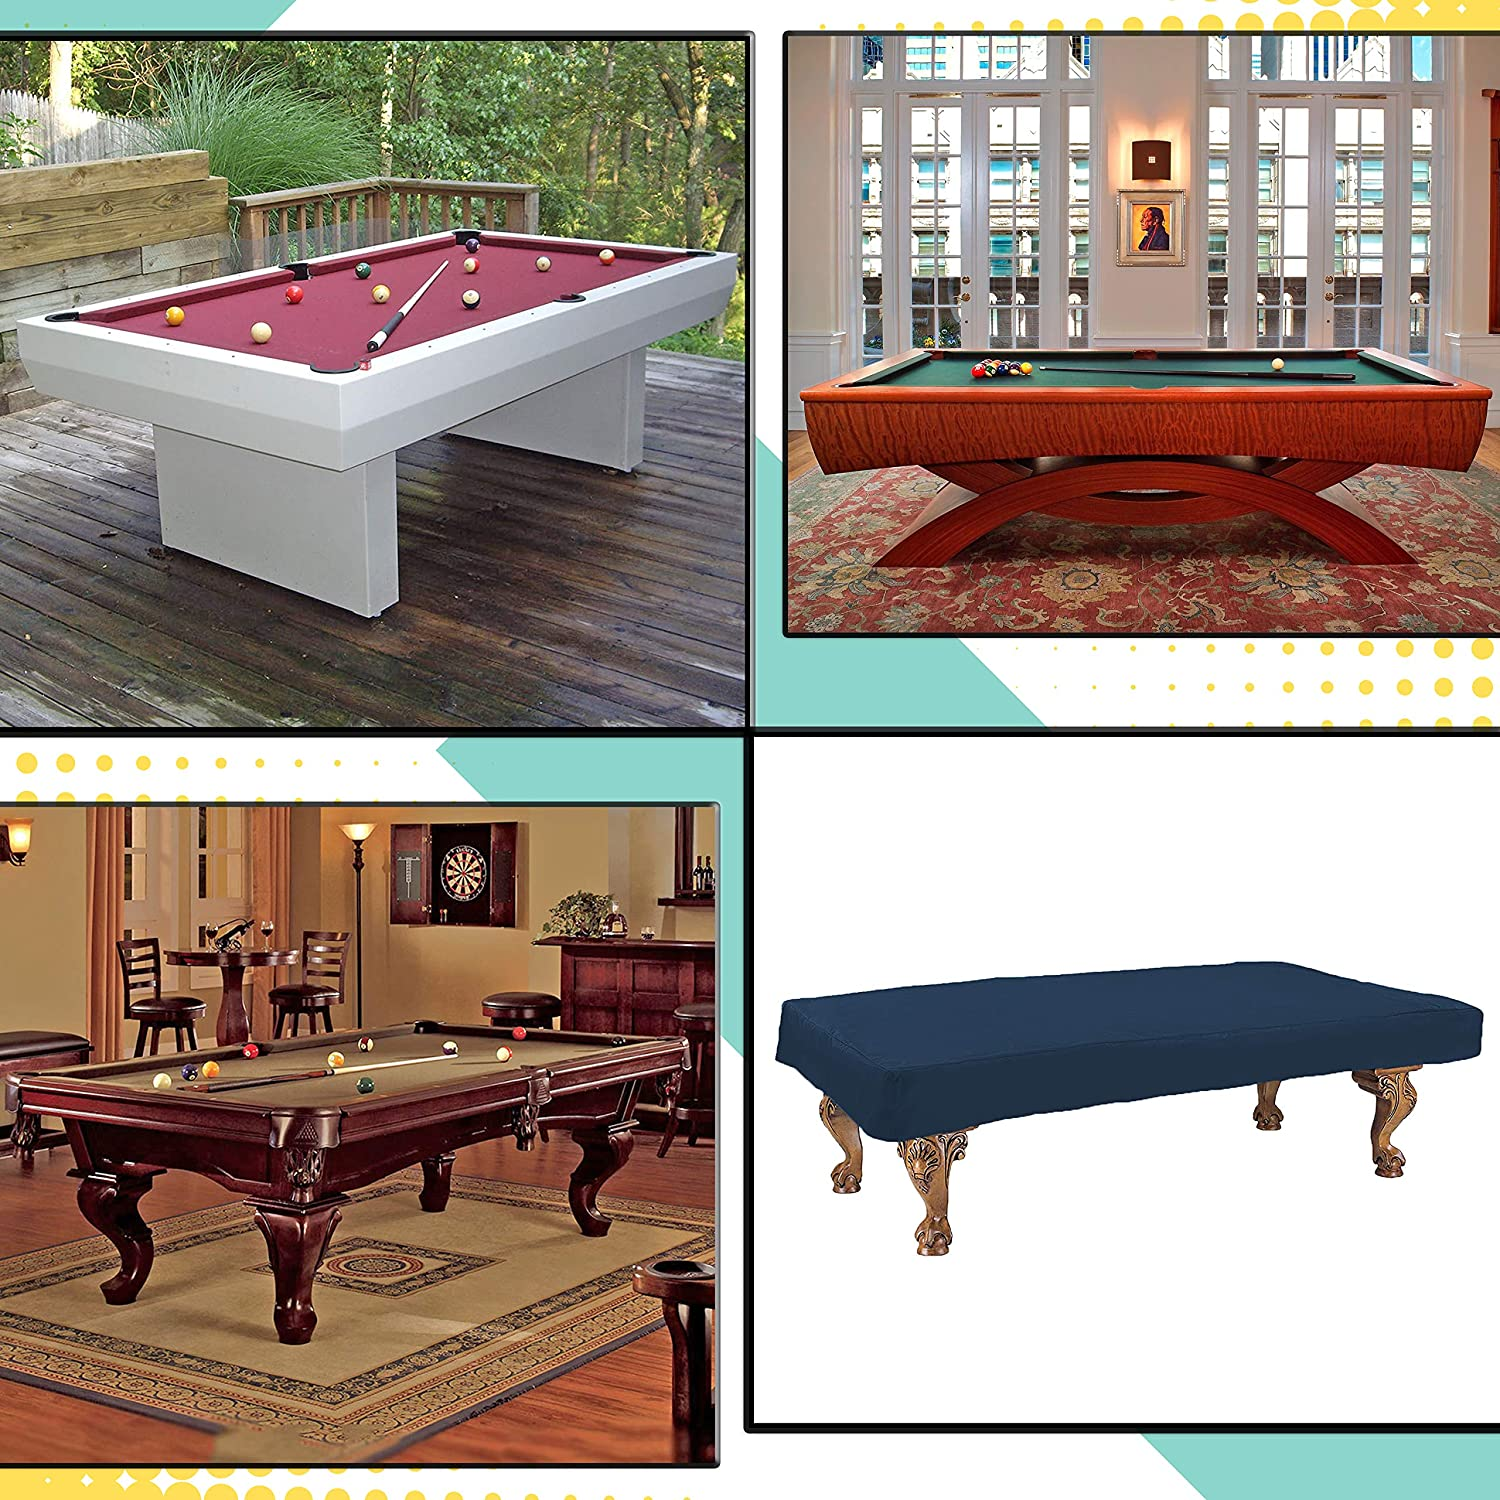 100/% UV /& Weather Resistant Outdoor Pool Table Cover Billiard Pool Table Cover 12 Oz Waterproof